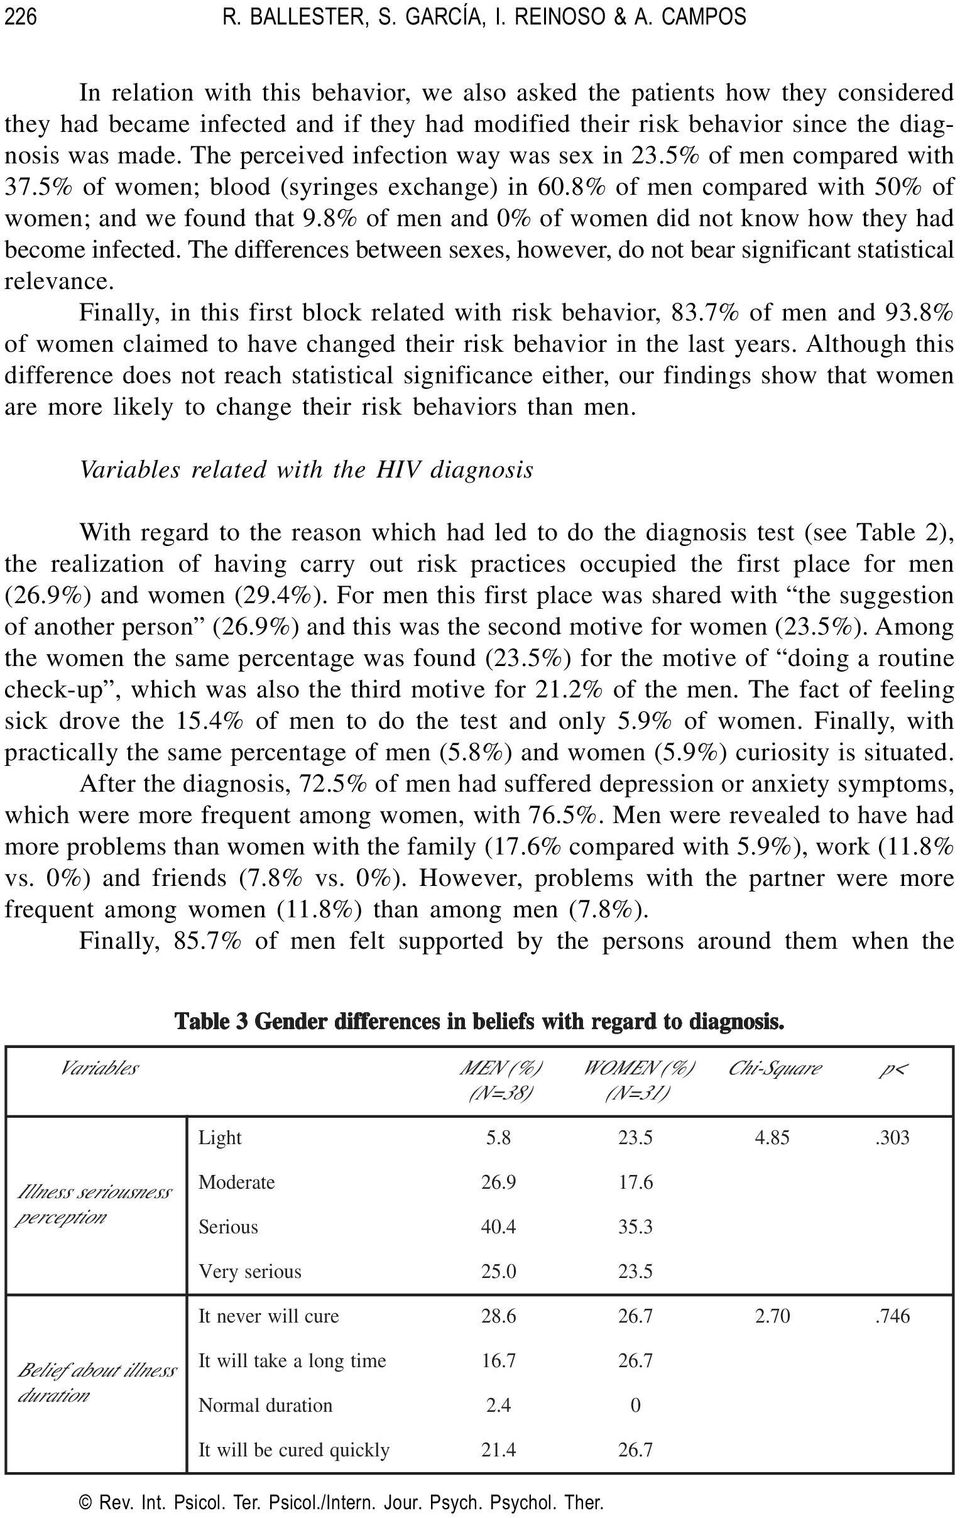 The perceived infection way was sex in 23.5% of men compared with 37.5% of women; blood (syringes exchange) in 60.8% of men compared with 50% of women; and we found that 9.